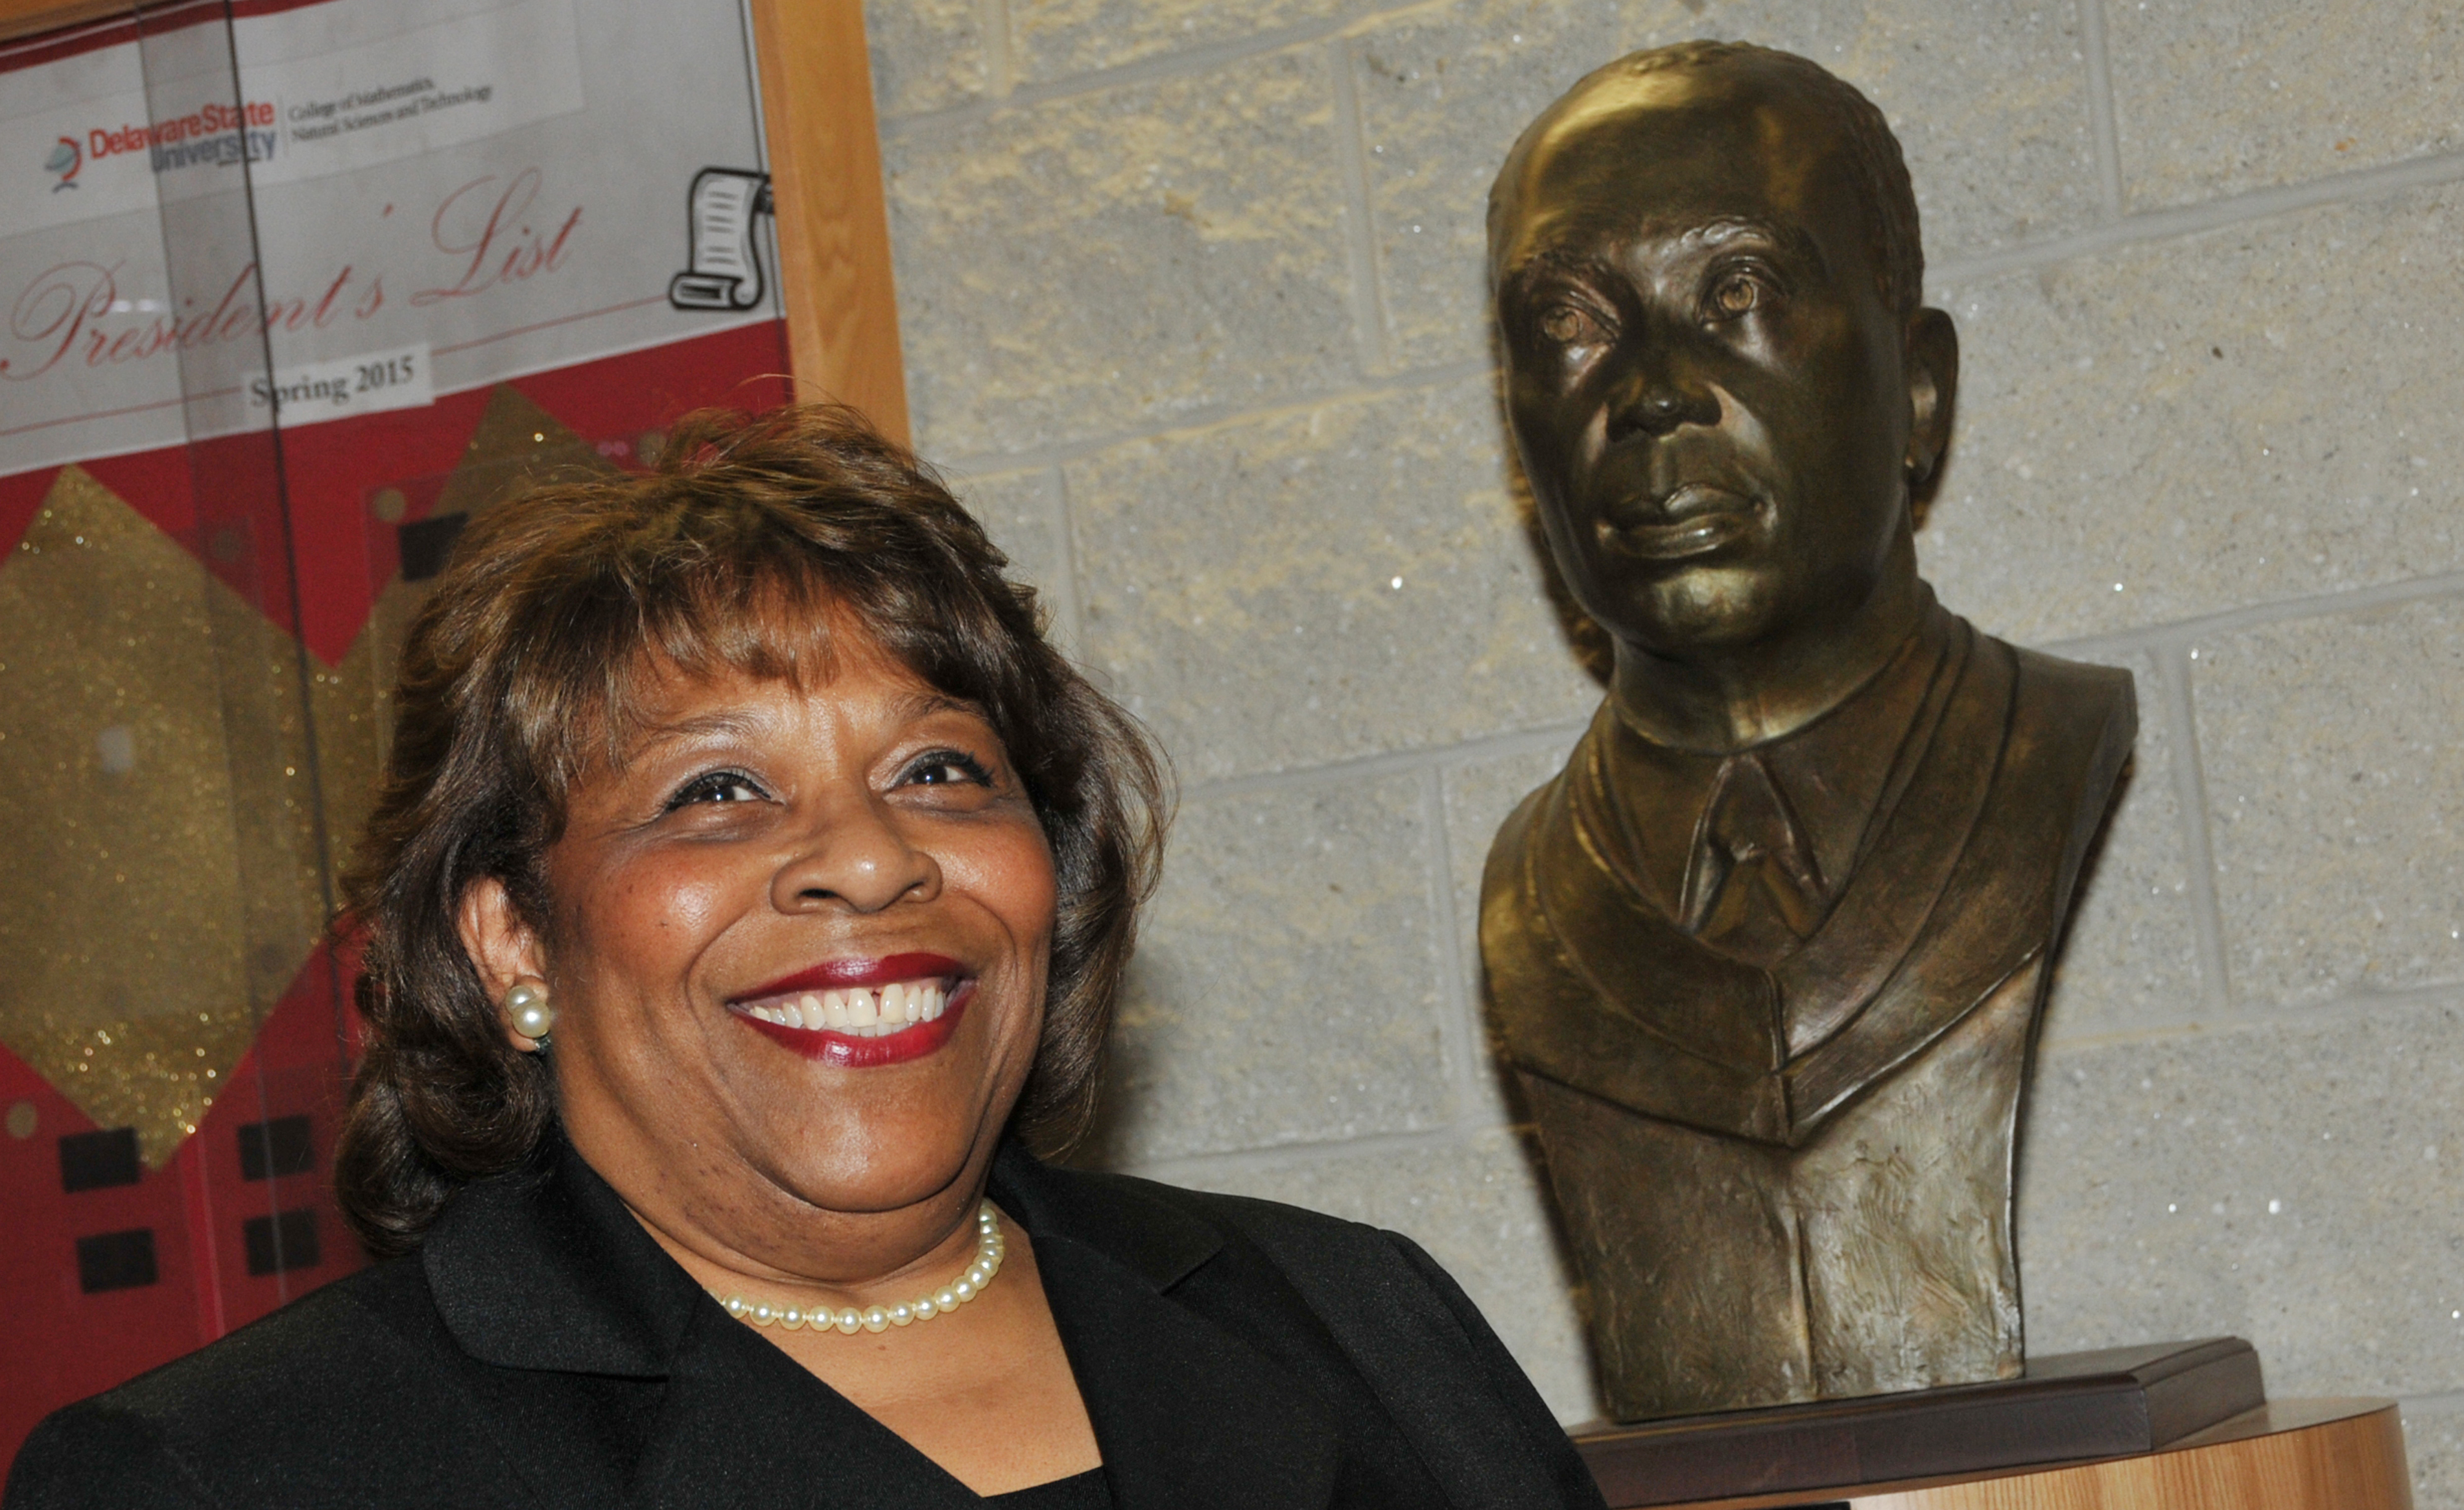 Dr. Wilma Mishoe, newly elected chairperson of the DSU Board of Trustees, stands next to the sculpture bust of her father Dr. Luna I. Mishoe, who was the president of then-Delaware State College from 1960-1987. Dr. Mishoe is the first woman to serve as the chair of the University's Board of Trustees.